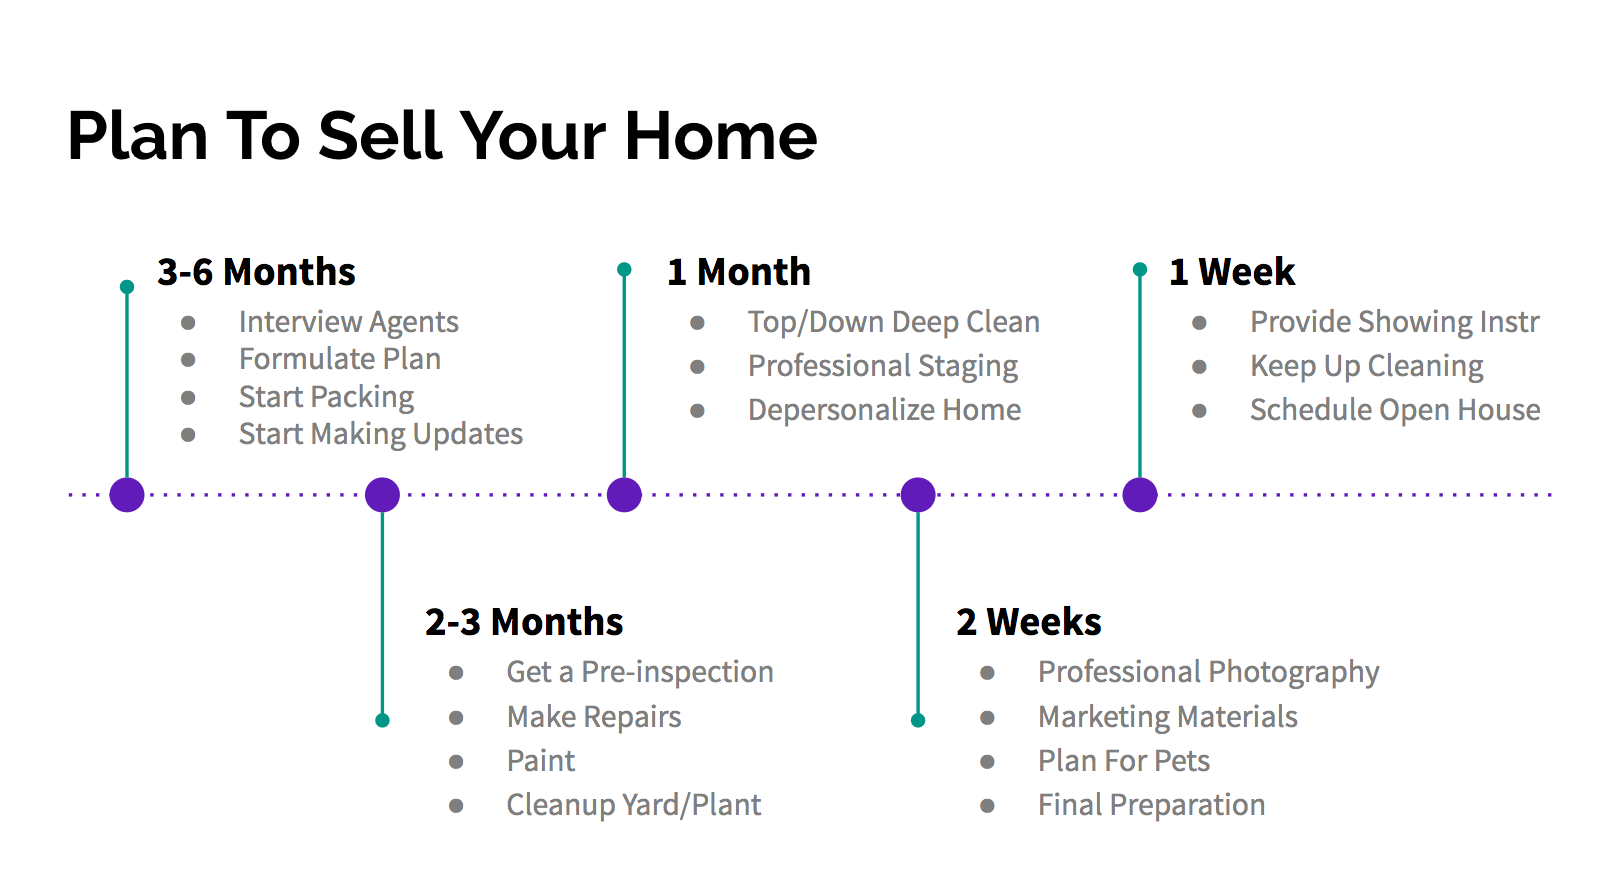 Your Game Plan for Selling Your Home